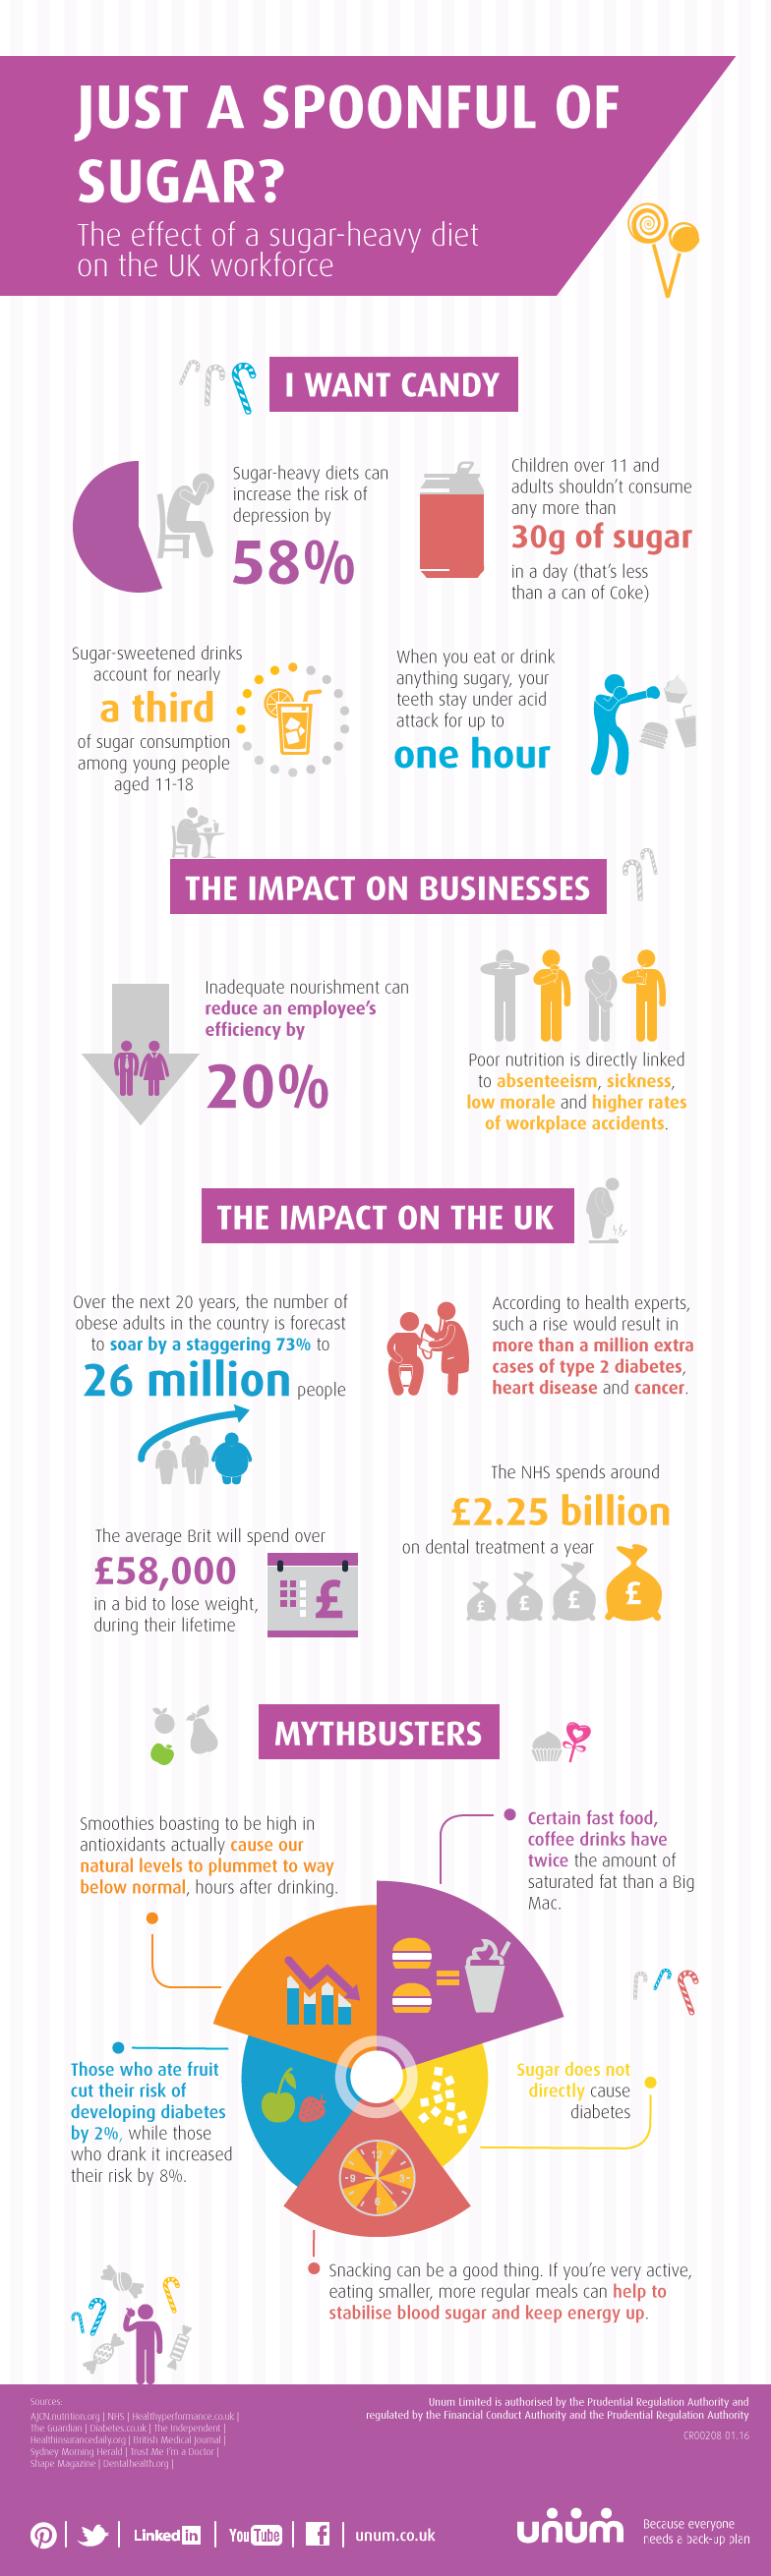 Article 7 - Sugar infographic